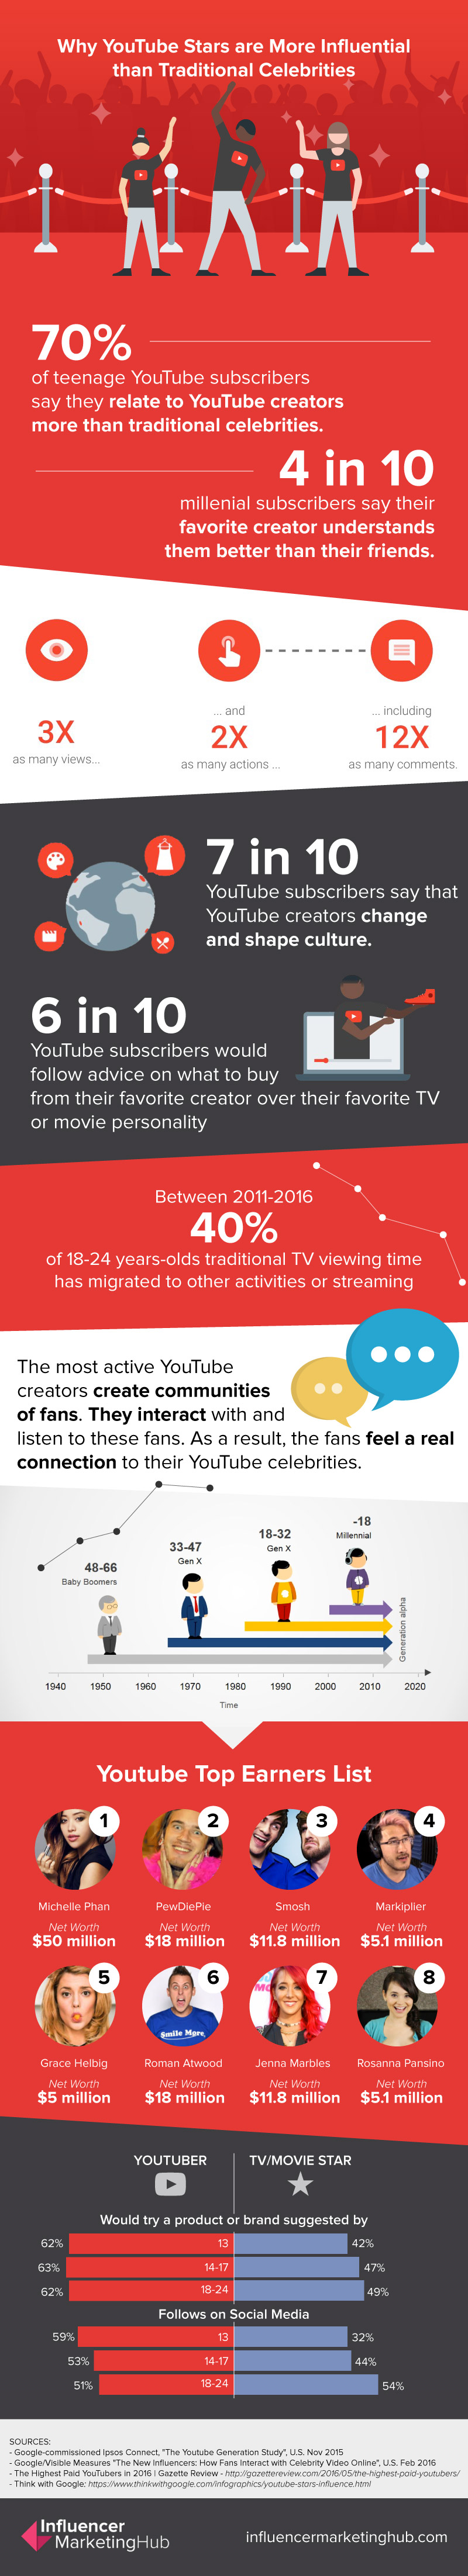 An infographic that shows Why YouTube Stars are More Influential than Traditional Celebrities